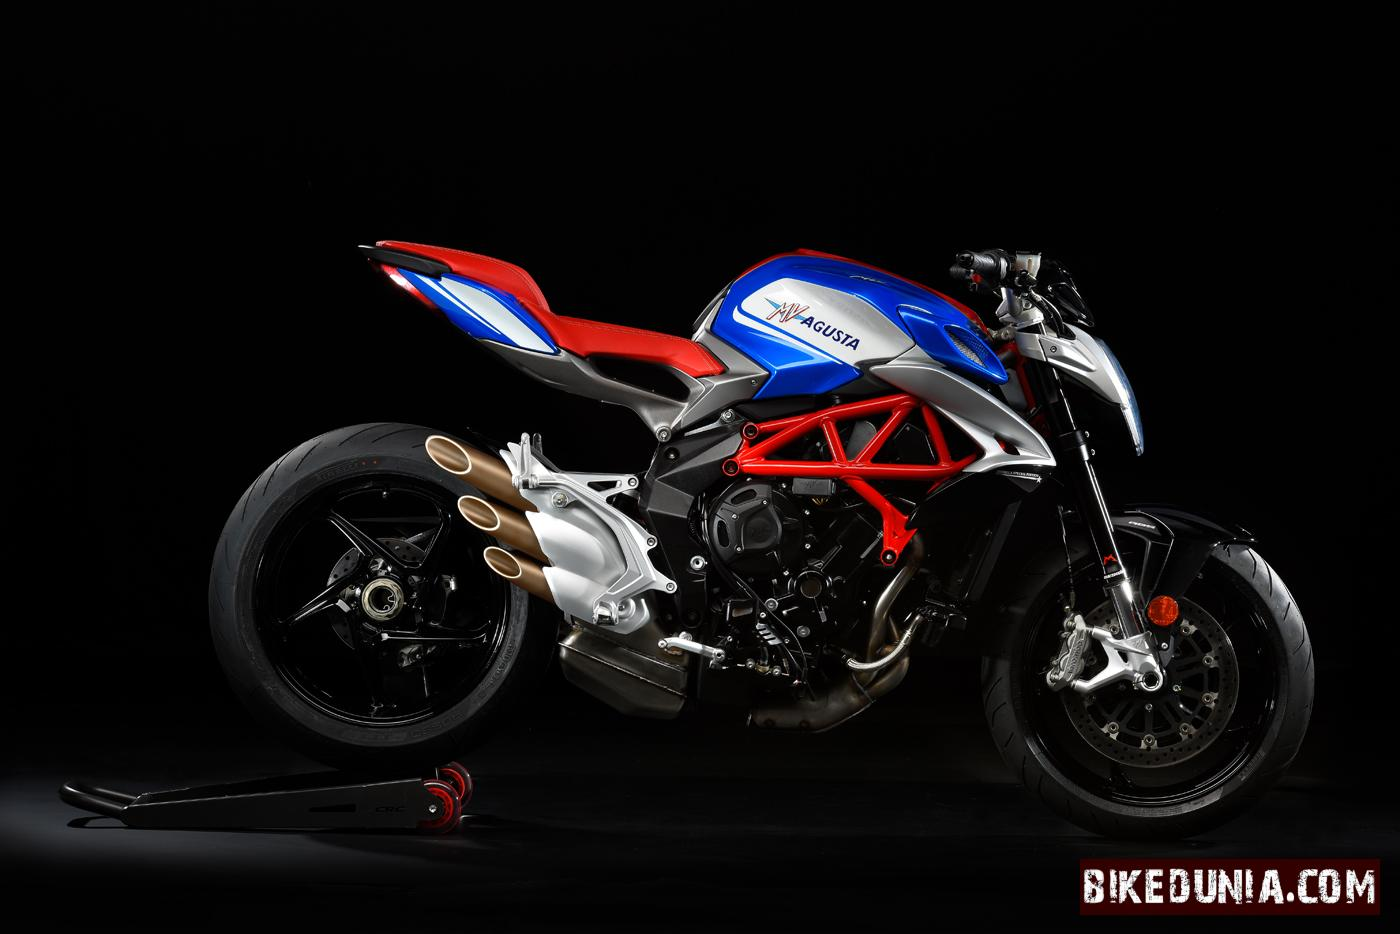 New Brutale 800